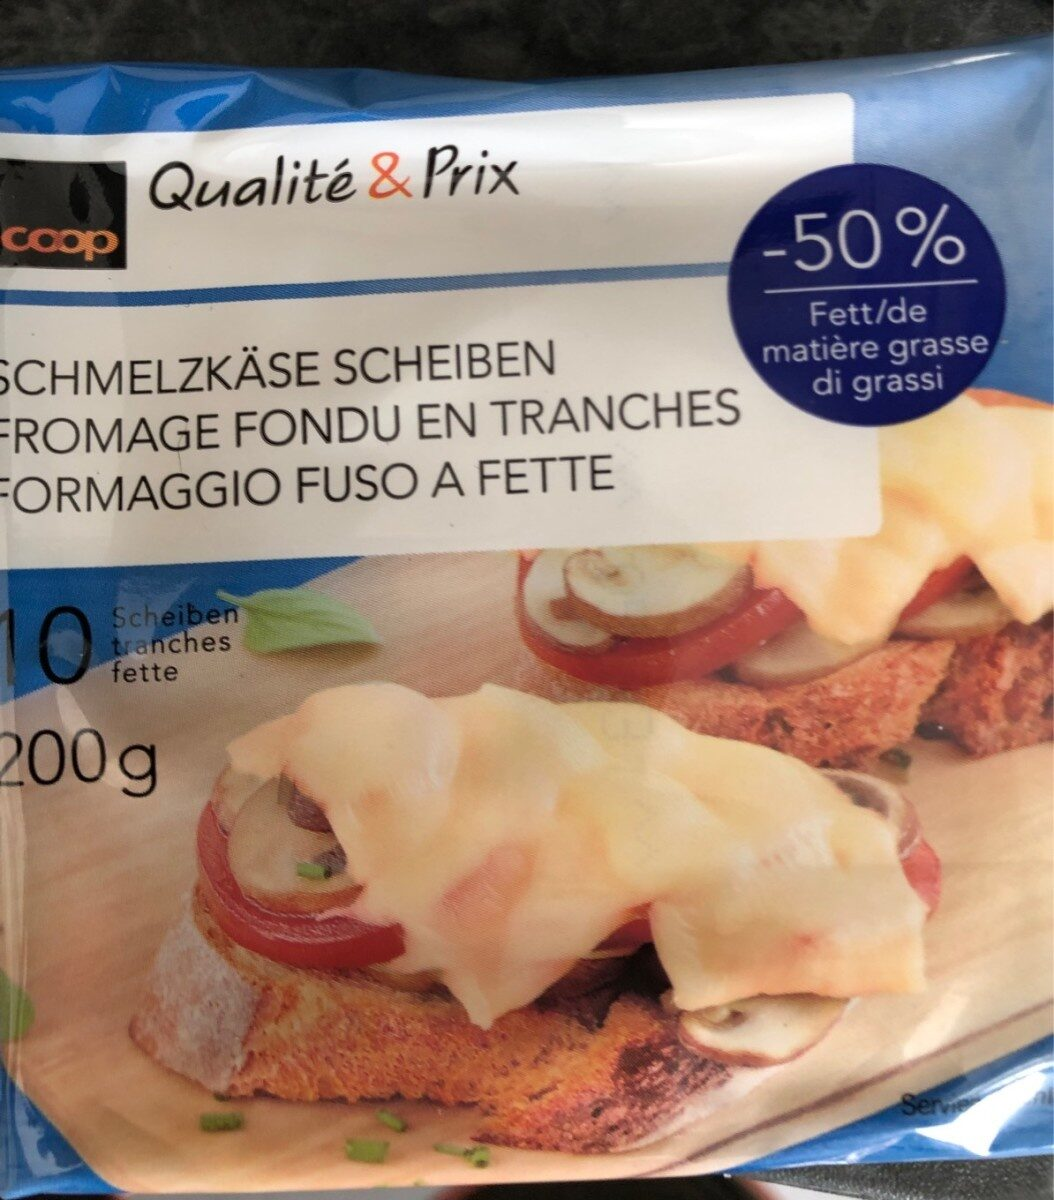 Qualité & Prix Sliced Cheese - Product - fr